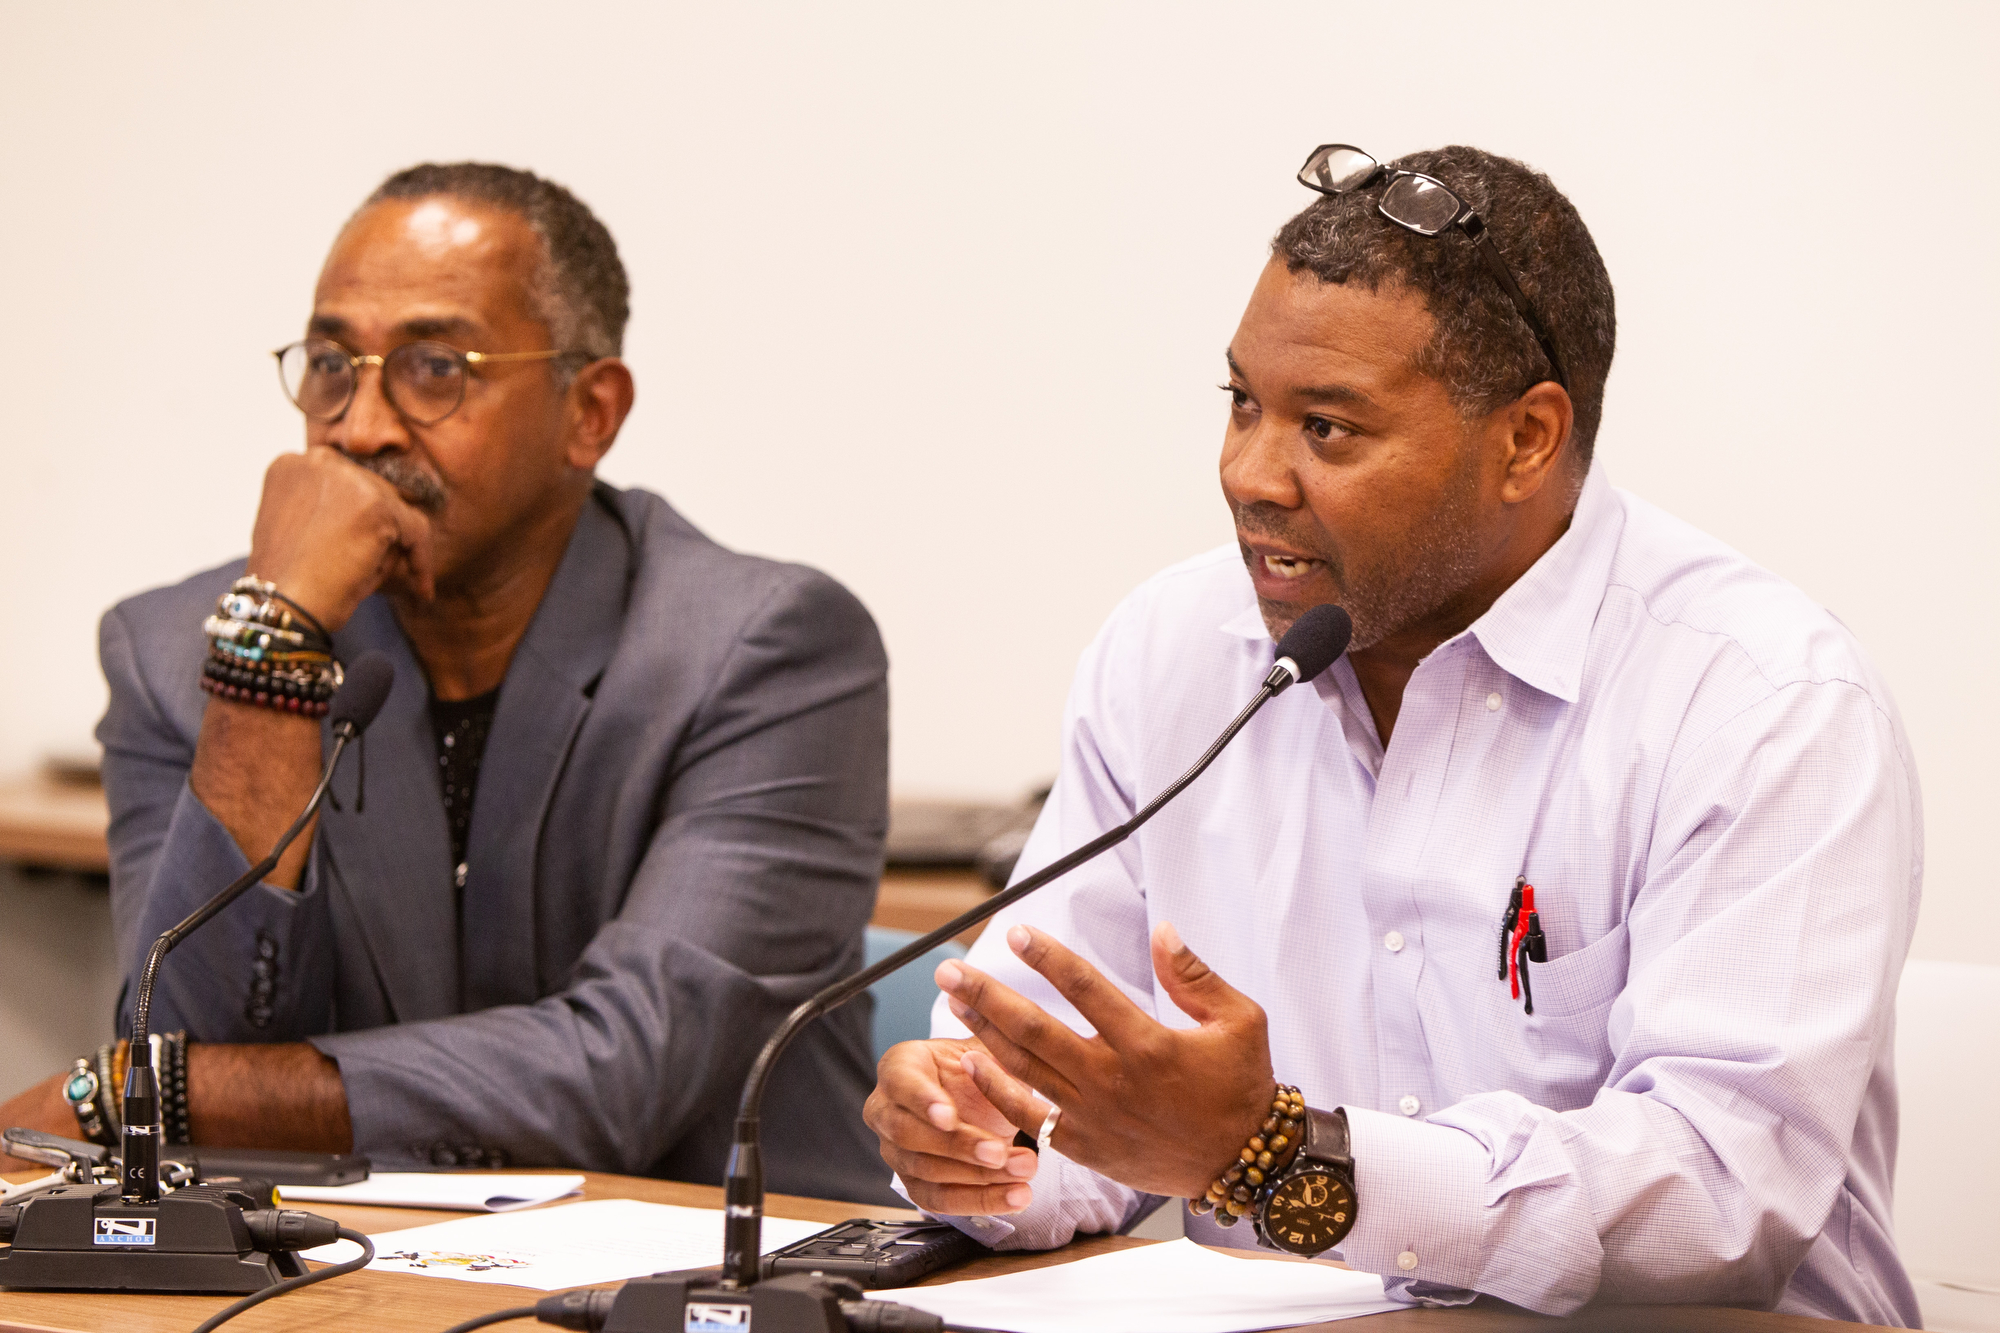 August 27, 2019: State Senator Sharif Street & State Representative Donna Bullock in partnership with State Senator Art Haywood hosted a Screening of The Mayor of Graterford, a film which follows the lives of two men who were sentenced to life without parole and released.